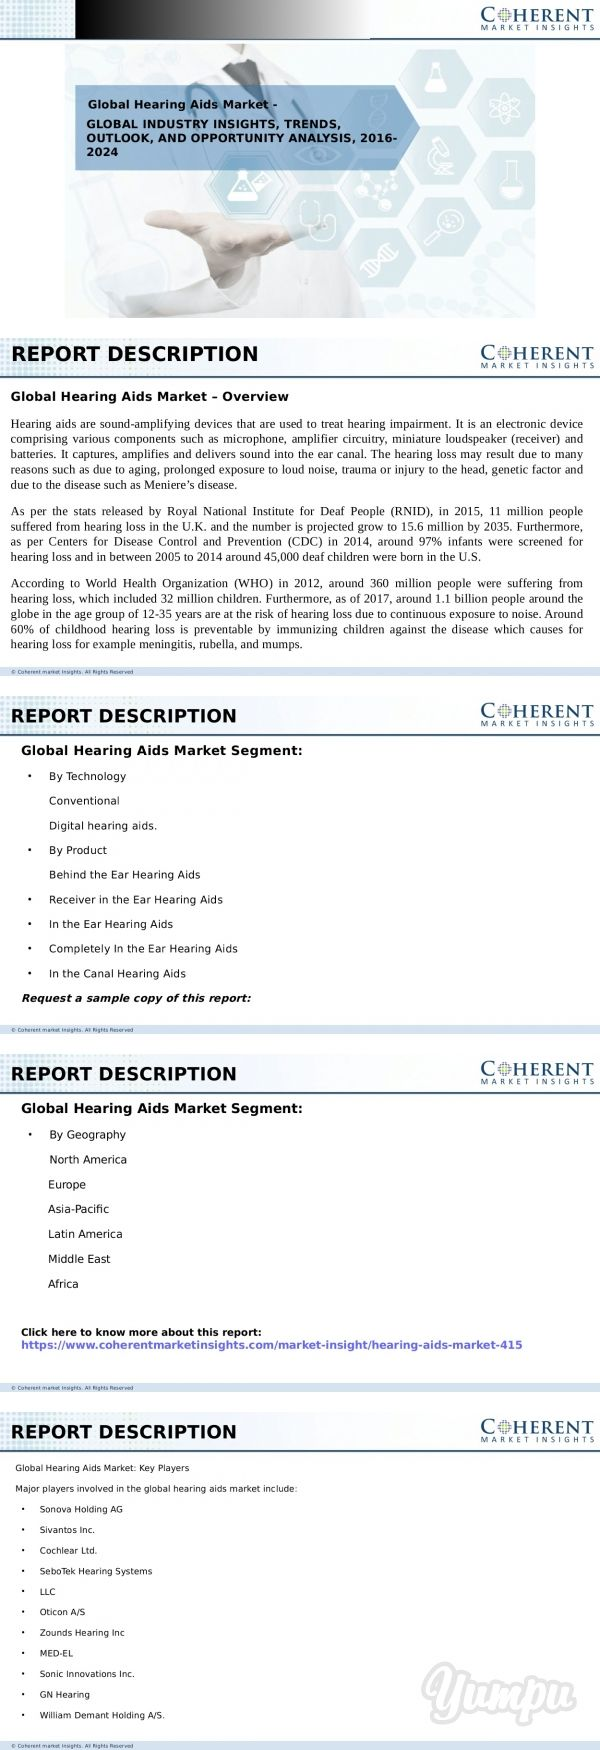 Global Hearing Aids Market - Magazine with 9 pages: